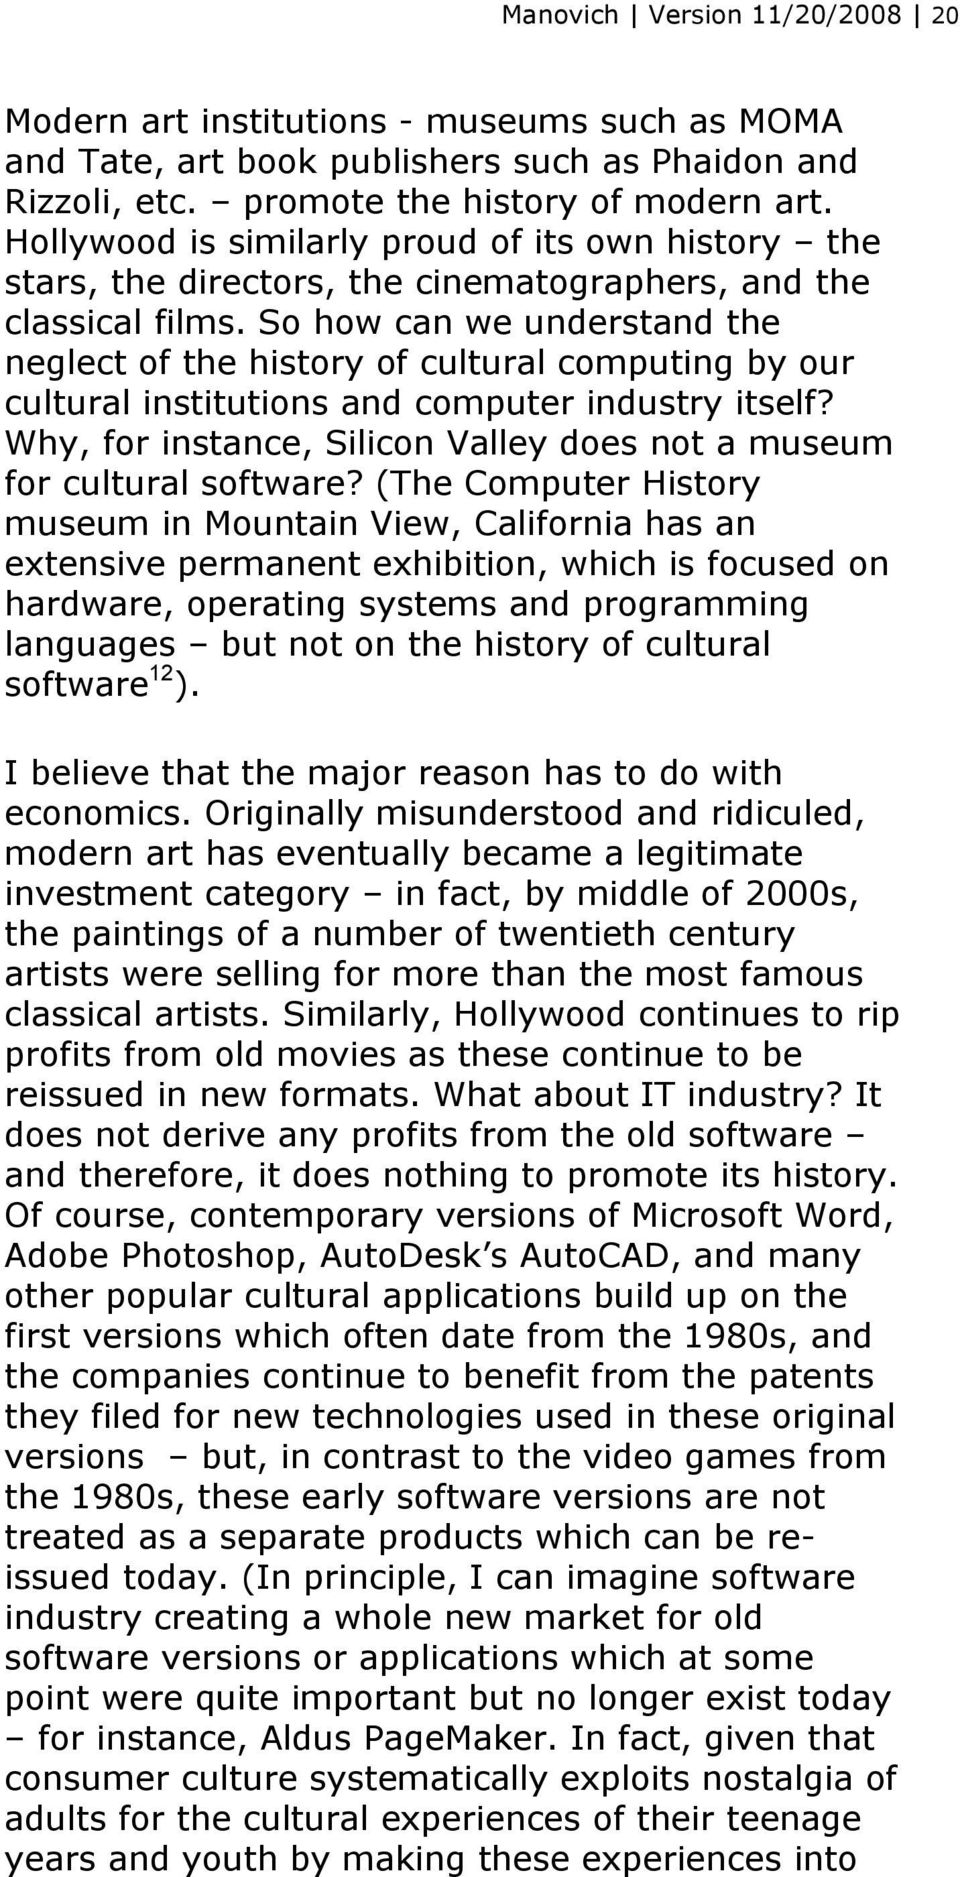 So how can we understand the neglect of the history of cultural computing by our cultural institutions and computer industry itself?